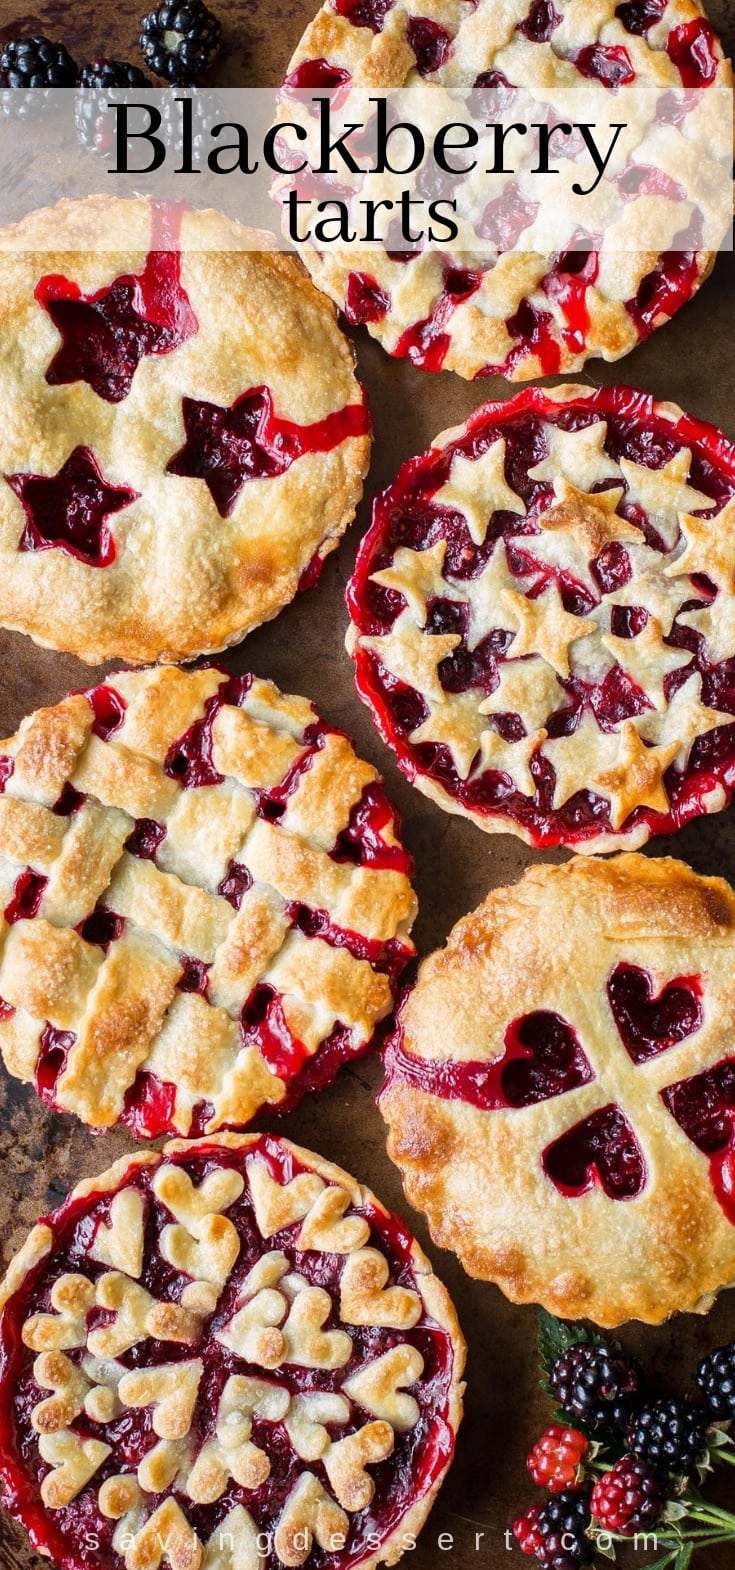 Six blackberry tarts with various designs on the top crust.